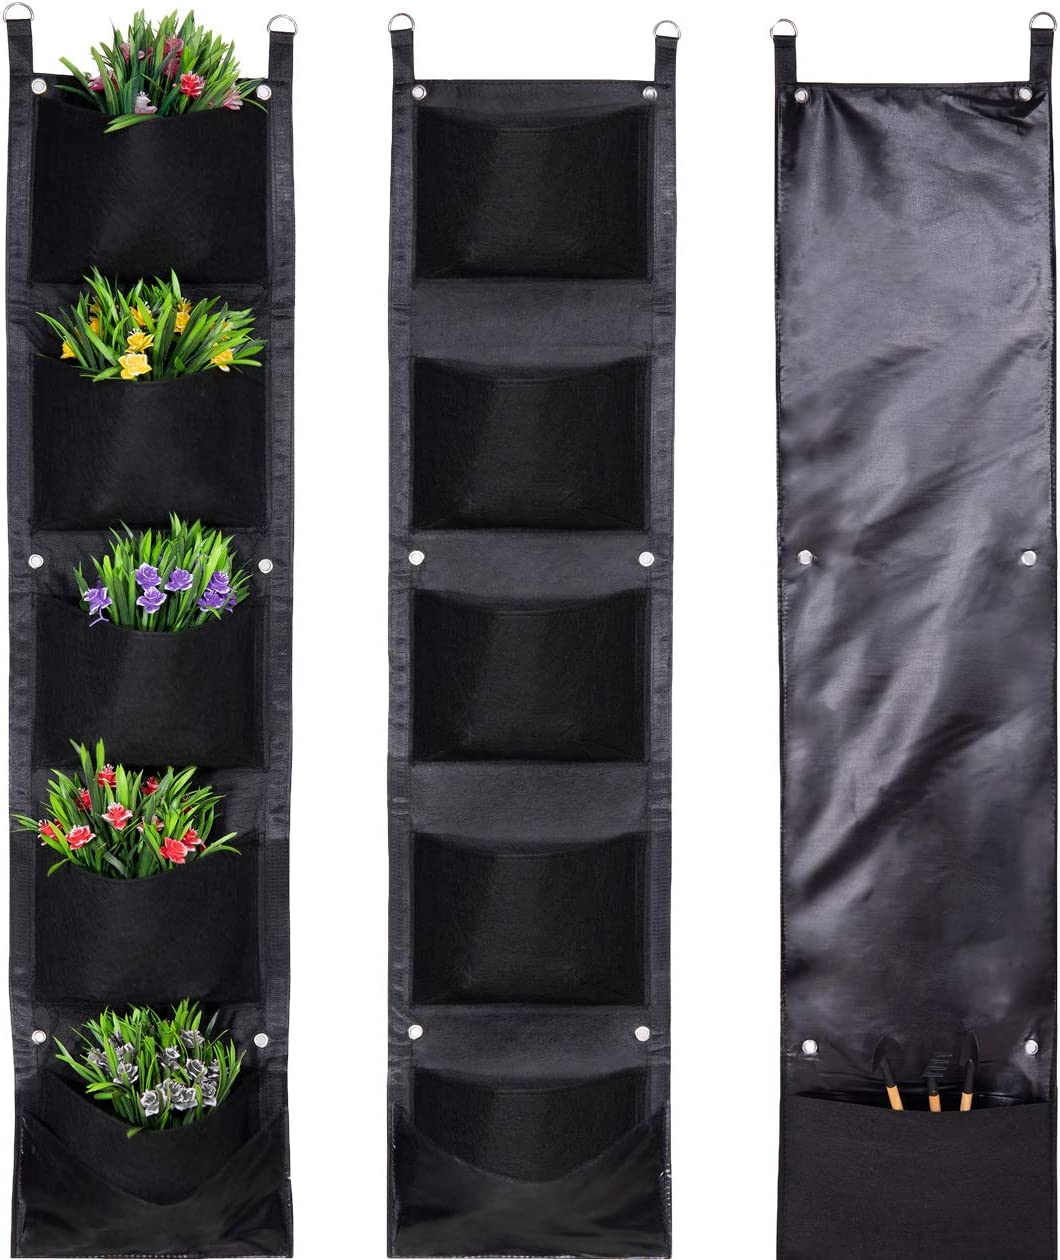 Mucalis Vertical Garden Wall Hanging Planter for Outdoor Indoor Plants 5 Bigger Deeper Pockets Wall Mounted Hanging Wall Planter Fence Balcony Herb Flower Plant Grow Bag with D-Ring Tool Storage